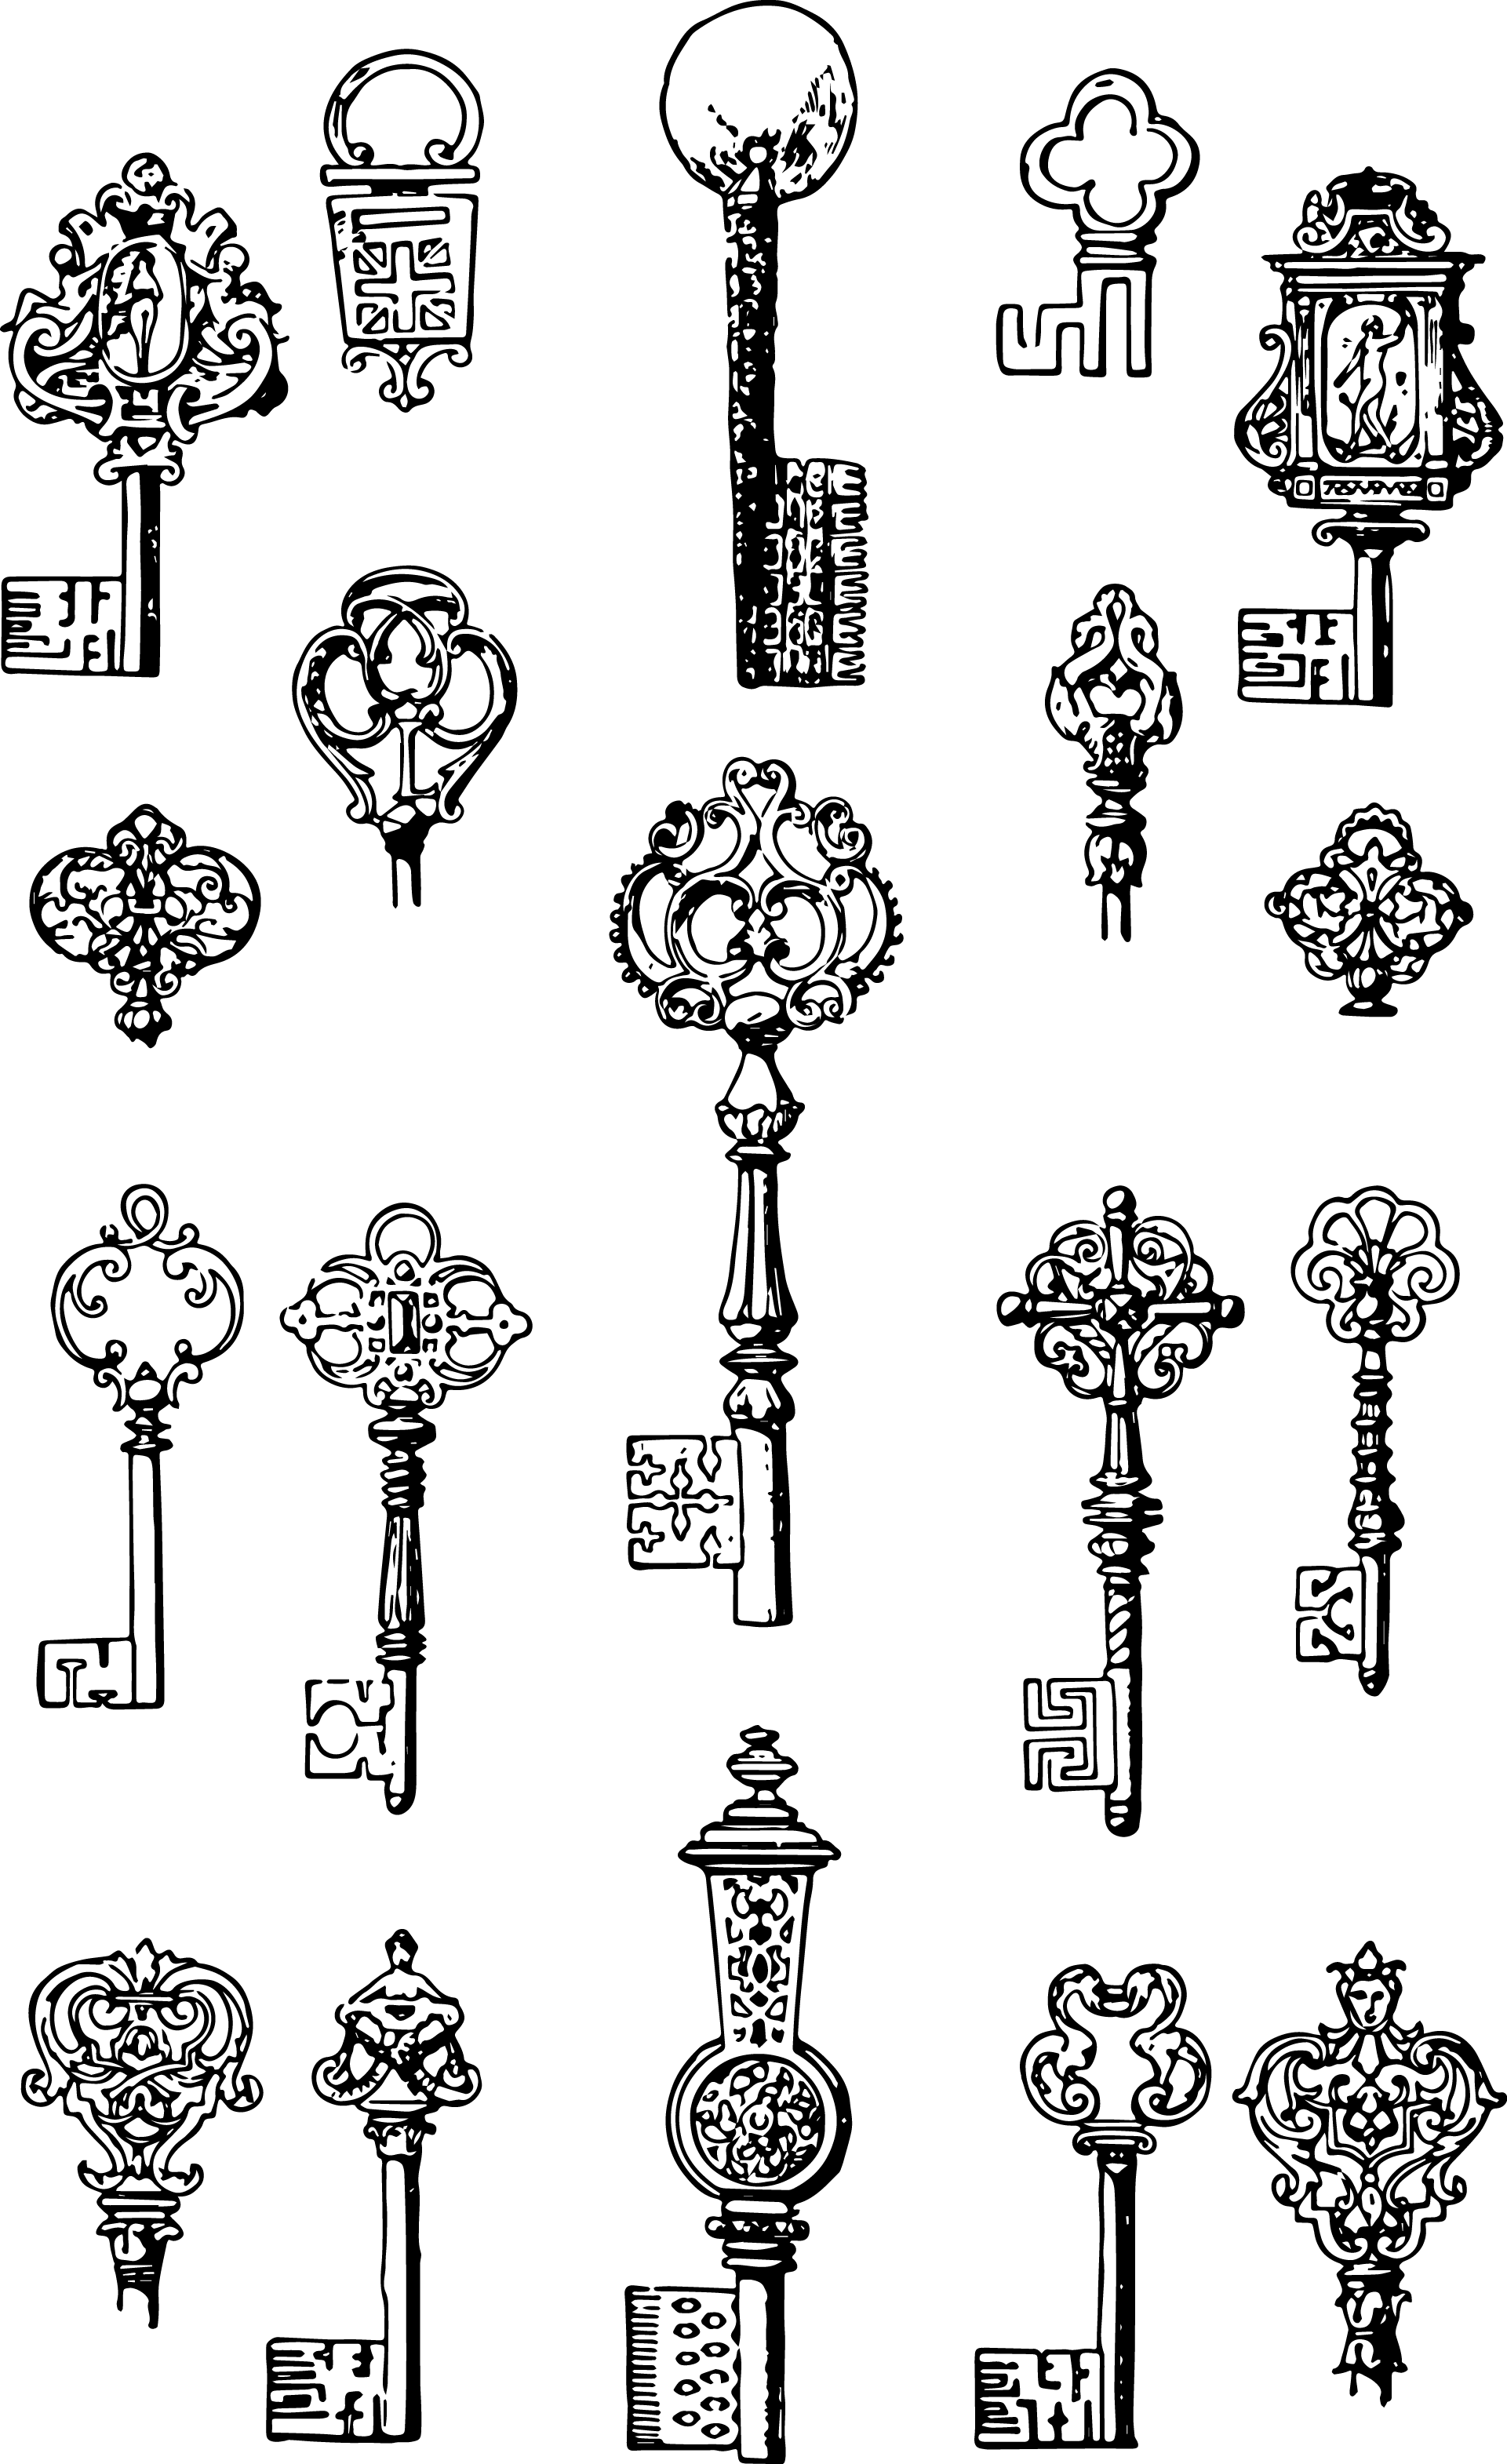 Vintage clipart #4, Download drawings